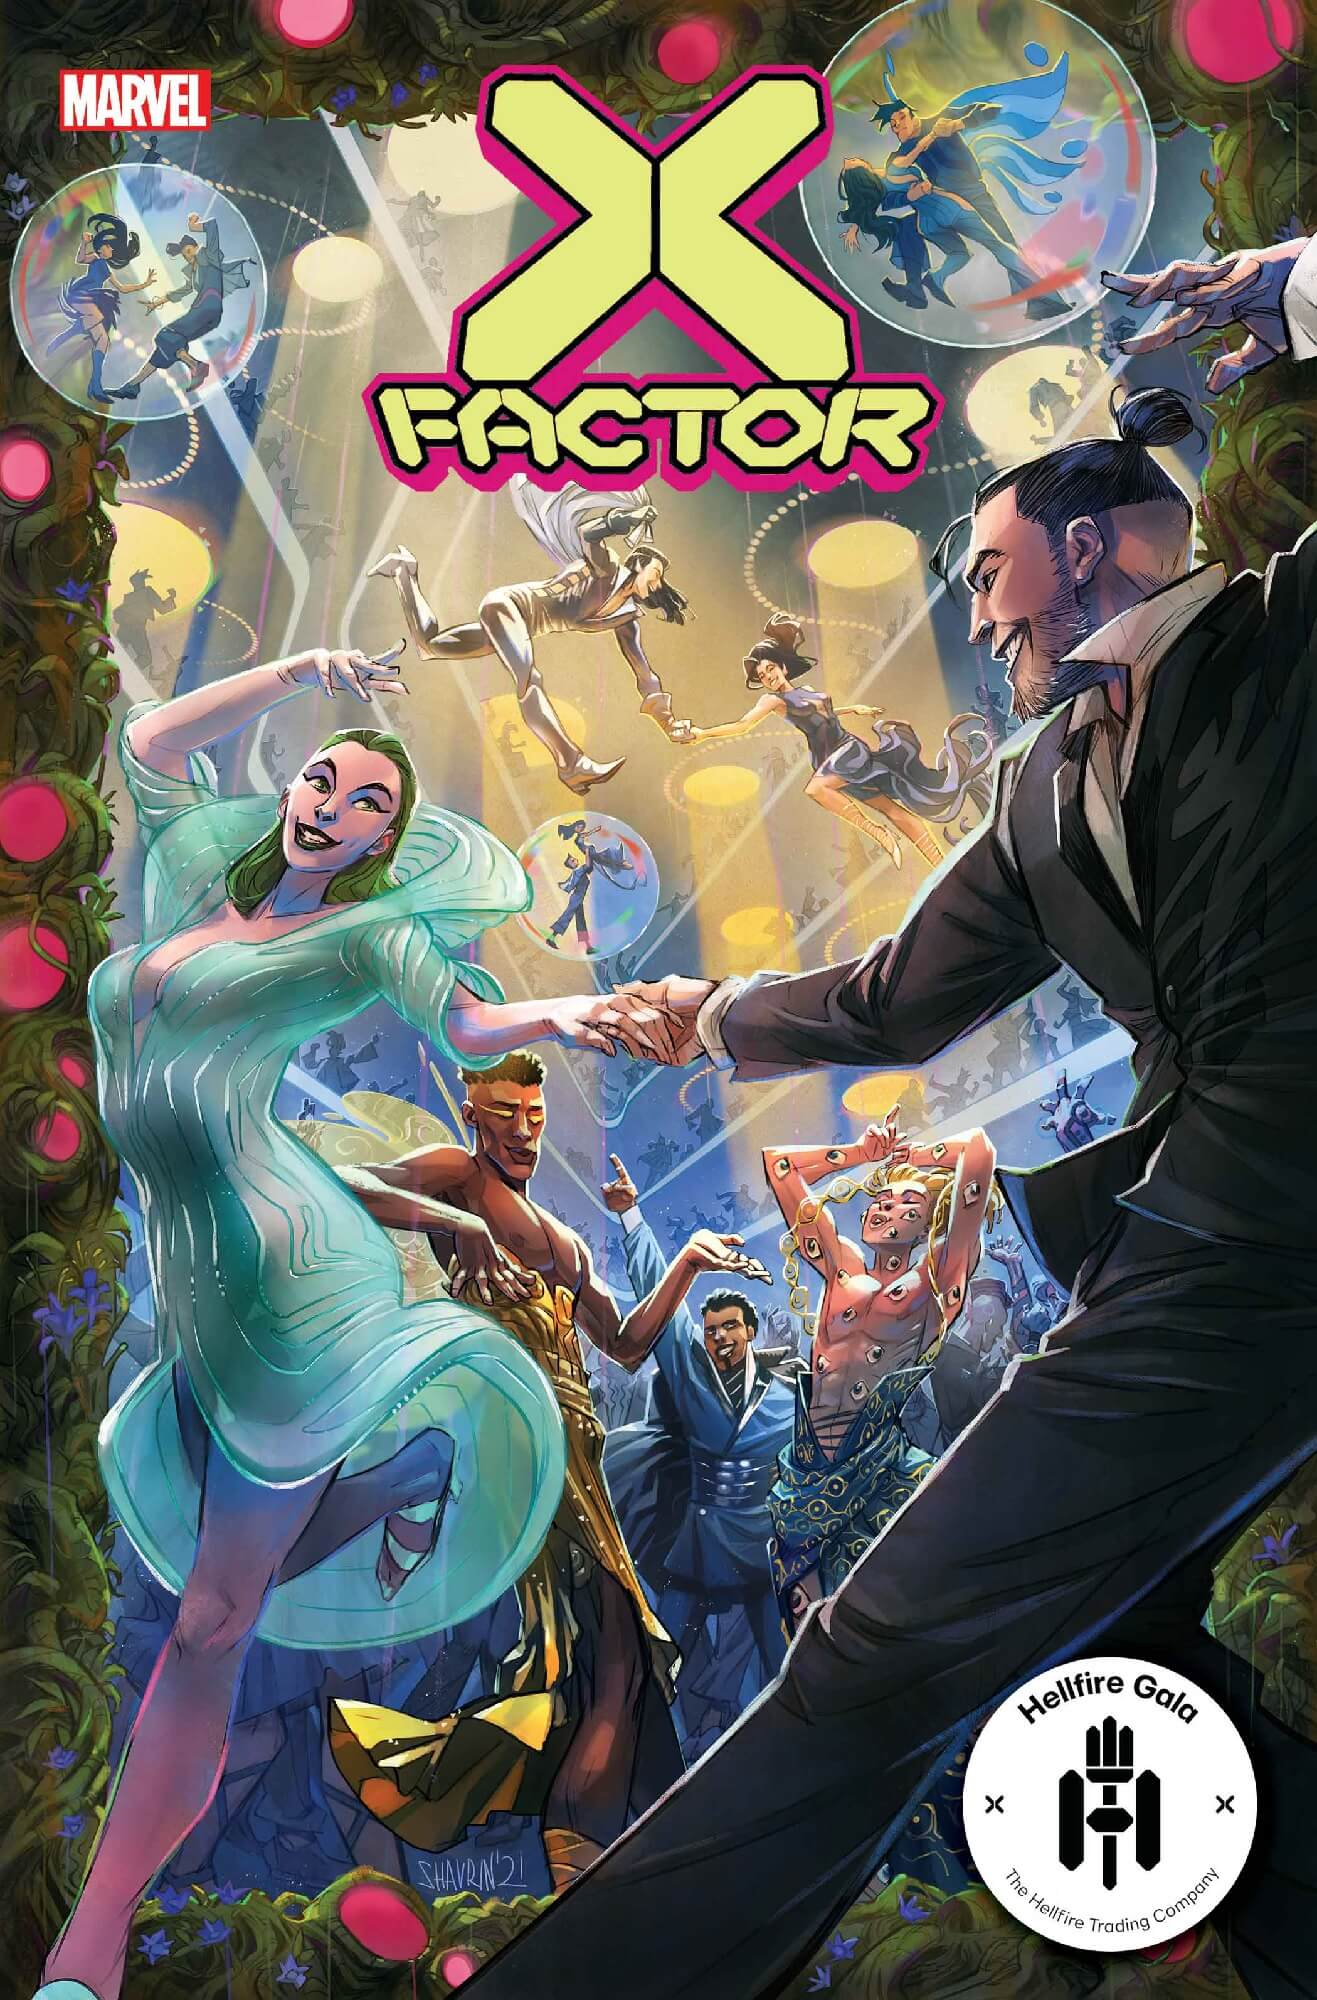 The cover of X-Factor #10 by Ivan Shavrin: Polaris in a green dress dances with Daken in a suit in the foreground, while other members of the team dance behind them. Northstar and Aurora are dancing in the air, and everyone is dressed up because it's the Hellfire Gala.